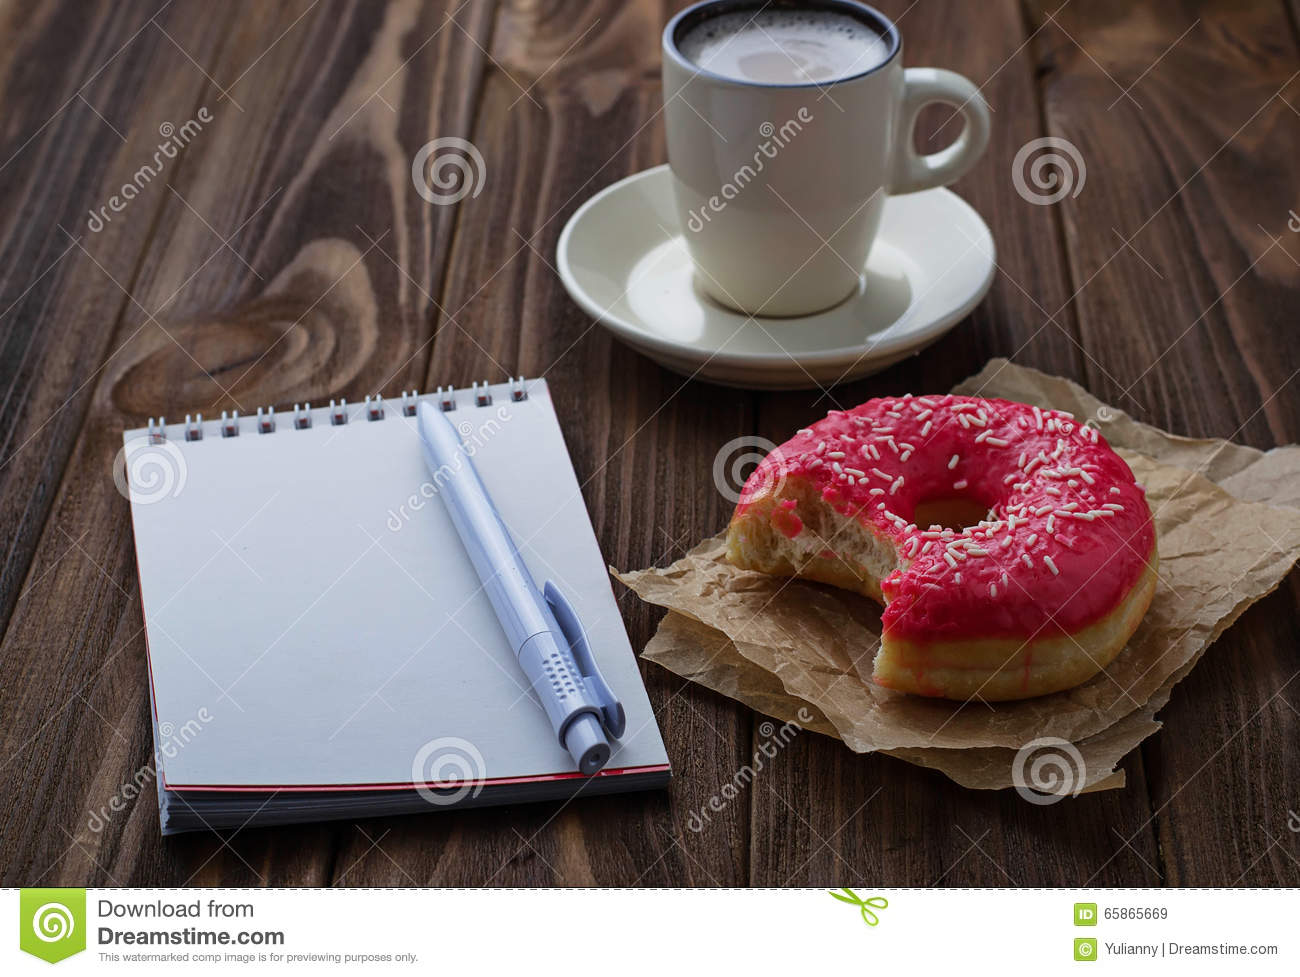 Bitten donut cup of coffee and notebook